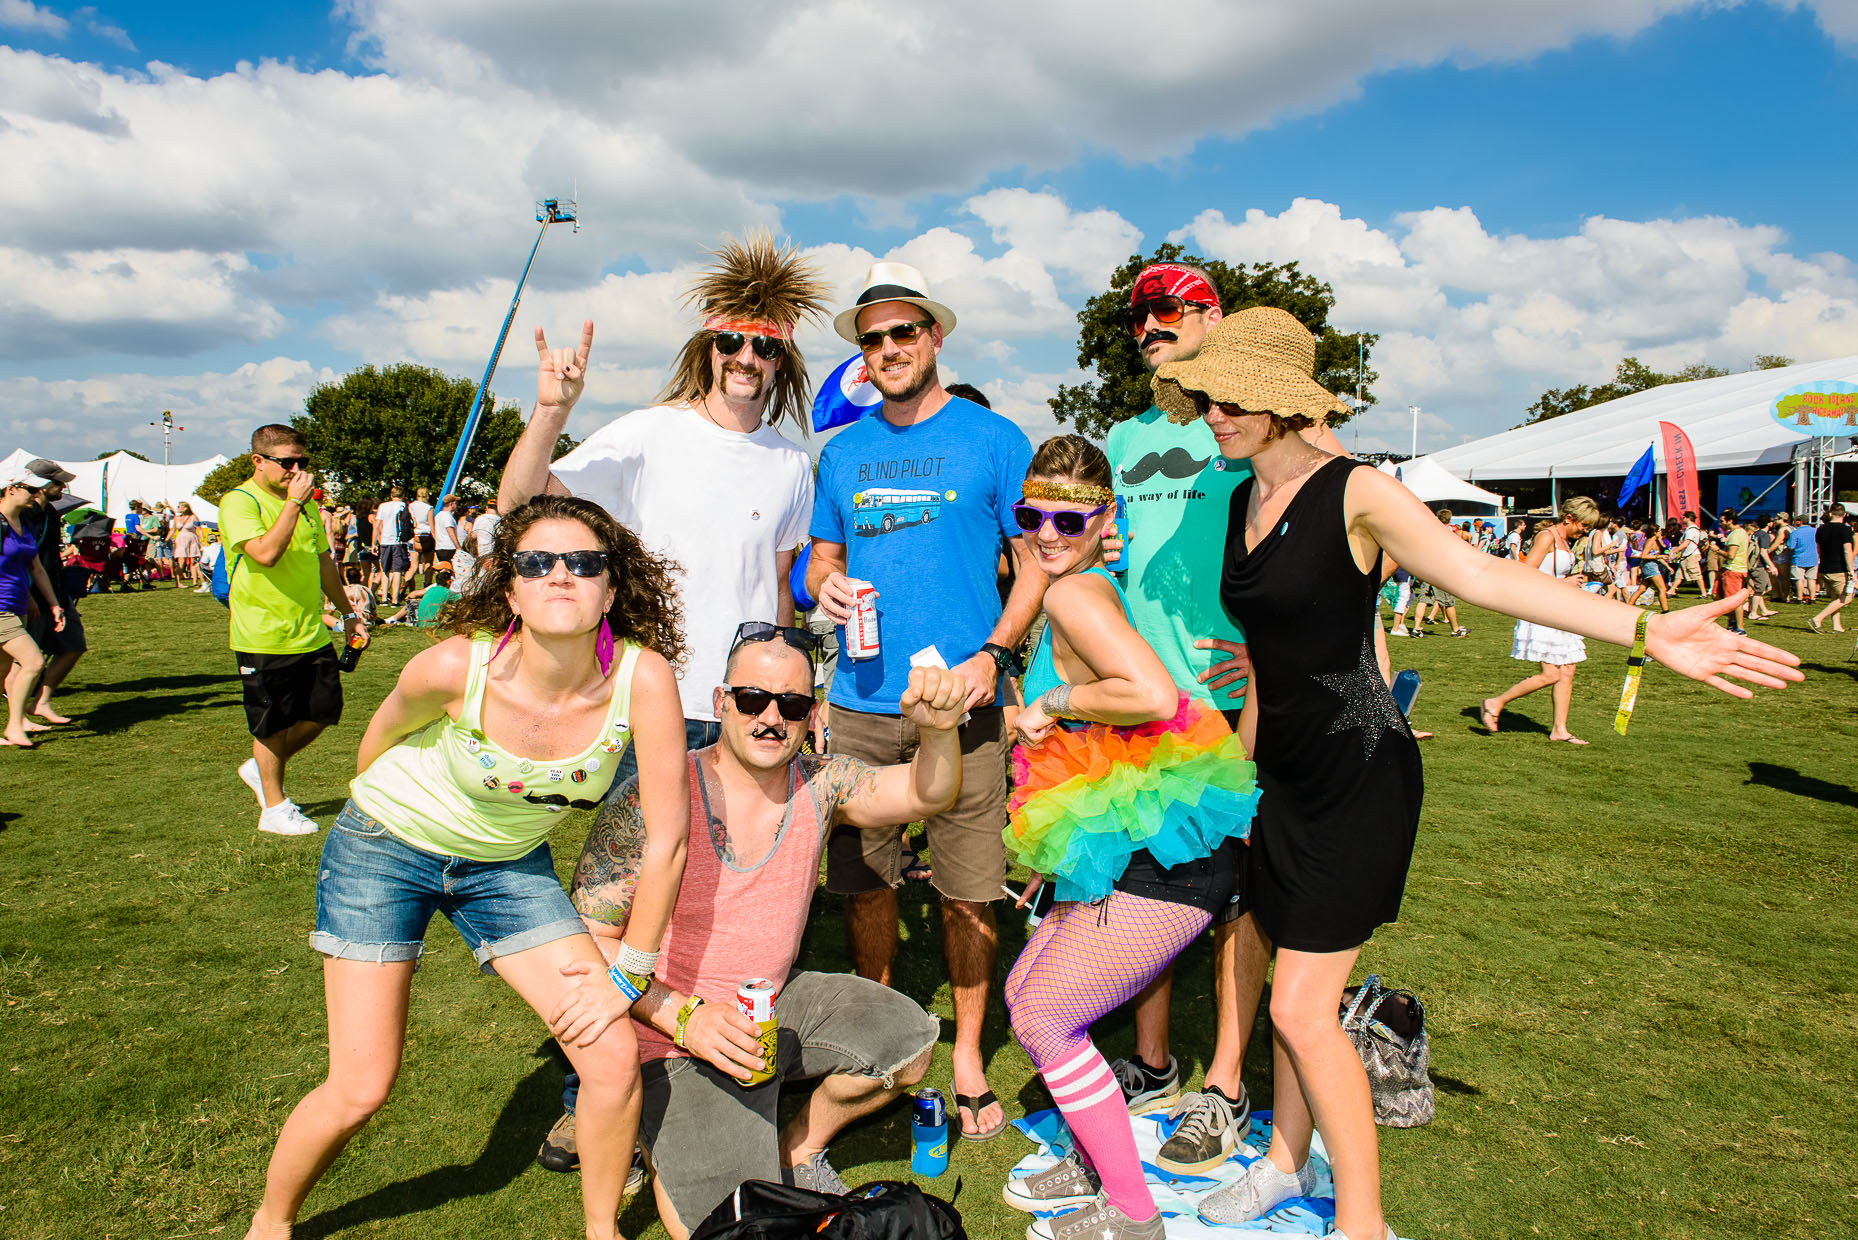 ACL-Austin-City-Limits-Music-Festival-Photographer-Commercial.jpg